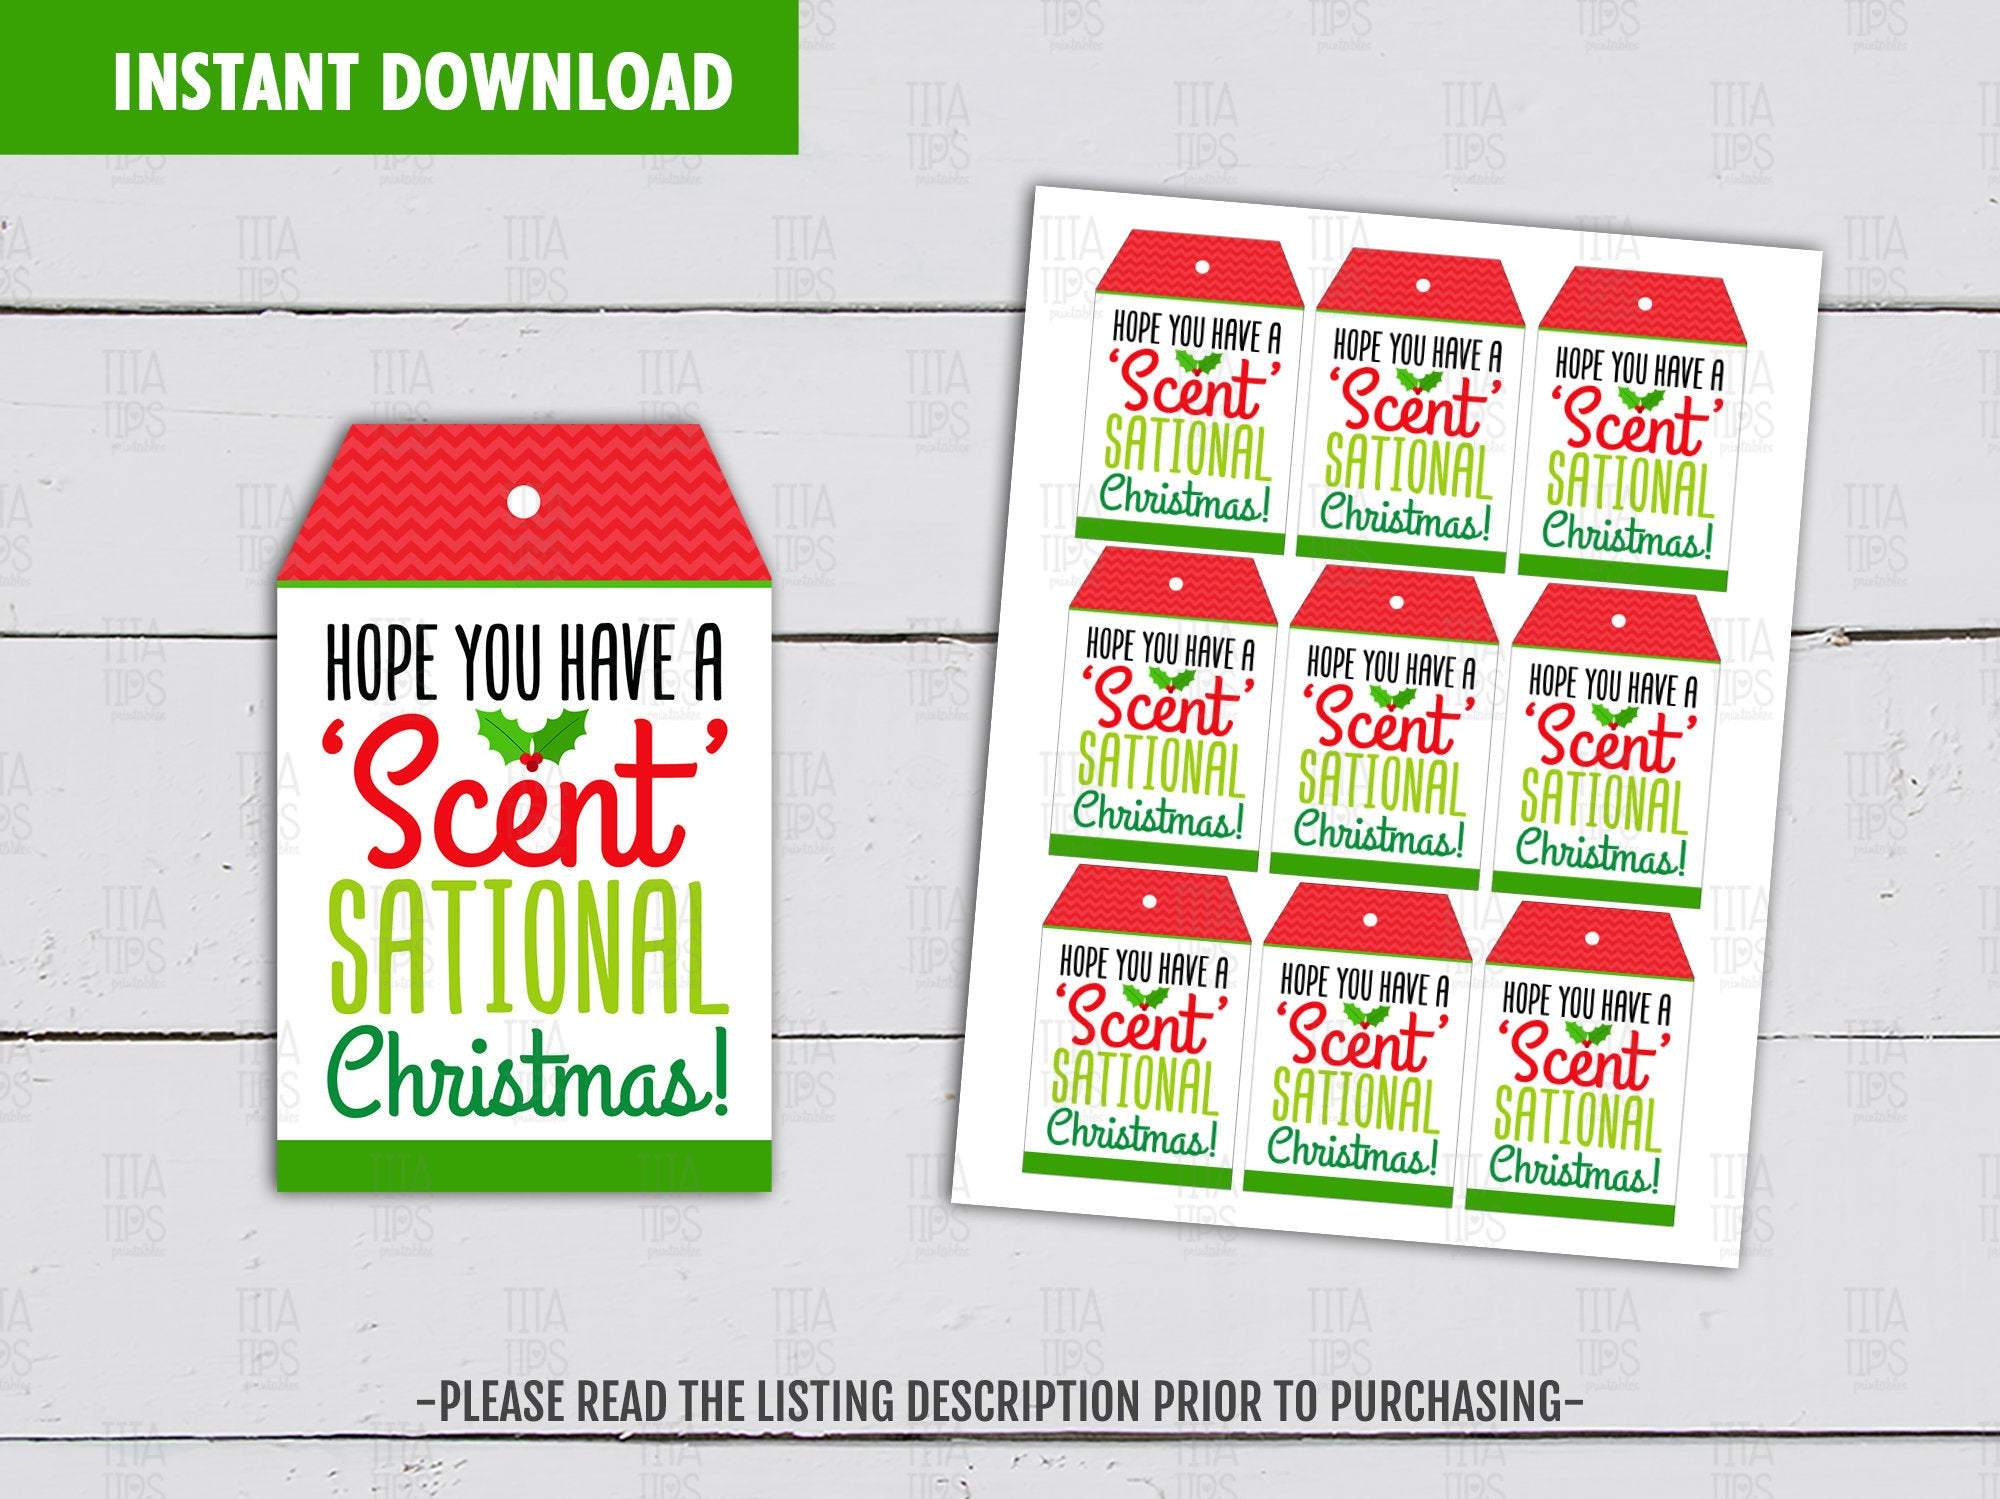 Hope you have a Scentsational Christmas Candle Printable Card, Holidays Favor Tags, Instant Download - TitaTipsPrintables